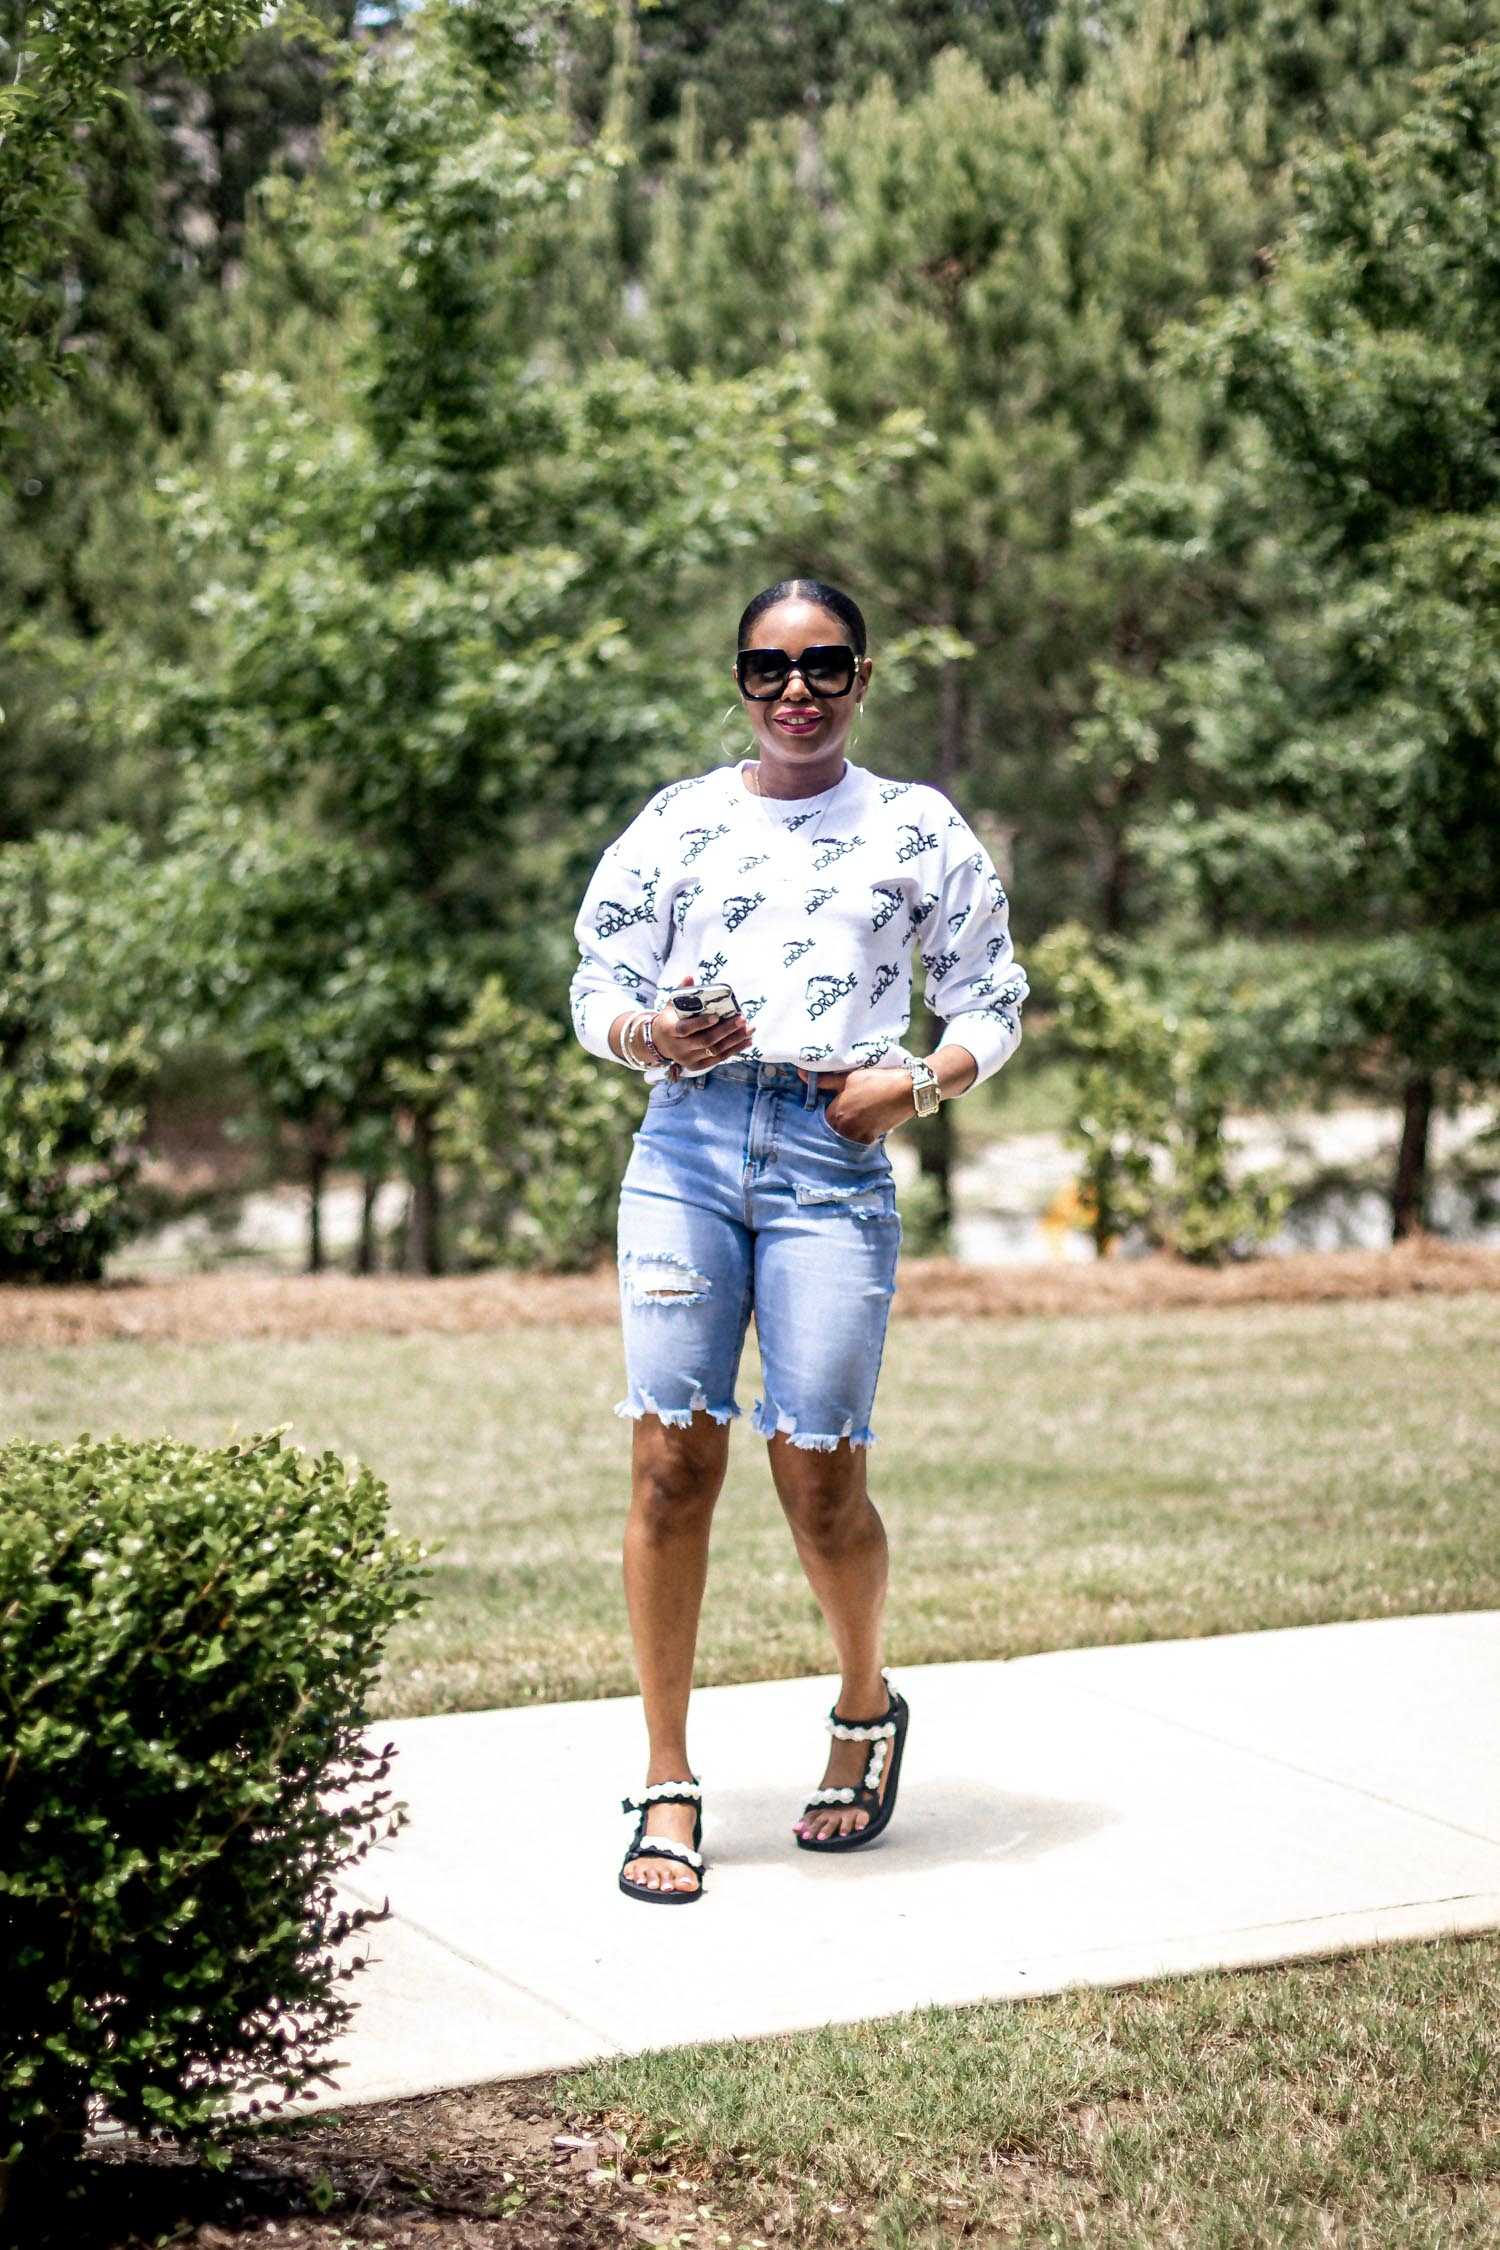 atlanta fashion blogger wearing the new jordache collection from walmart, high waist jeans, summer denim, how to pick the perfect denim for summer, summer denim, jordache high waist jeans, crop t-shirt, jordache tee, crop top, white crop top, what to wear around the house for summer, summer loungewear, best fitting jeans, best fitting denim, dark denim, dark denim shorts, how to style dark denim shorts for summer, the perfect shorts for summer, white t-shirt, how to style graphic t-shirts for summer, summer sweatshirts, bermuda shorts, how to style denim bermuda shorts, how to style denim bermuda shorts for summer